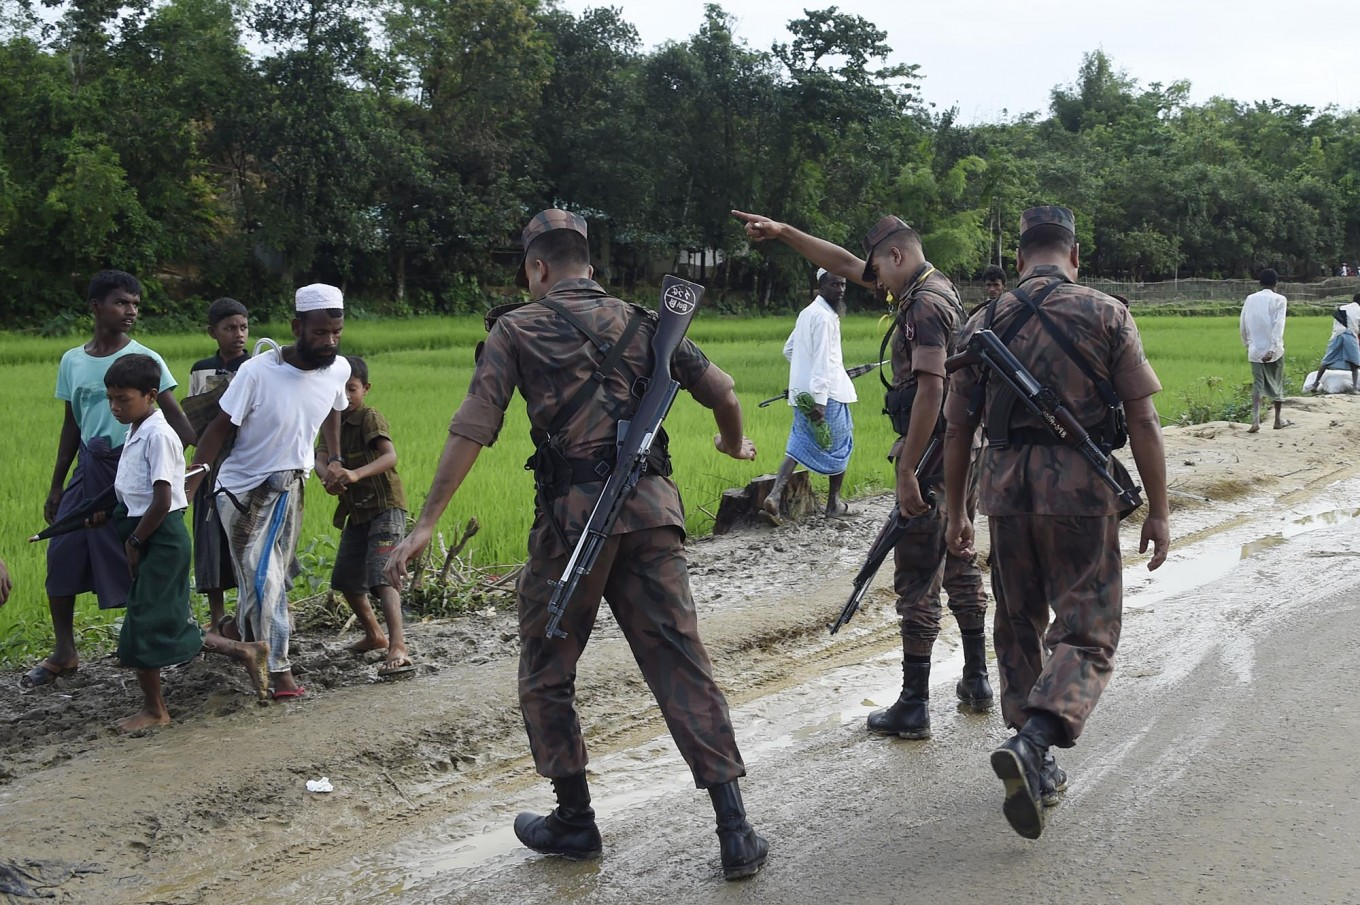 "Bangladesh Border Guard (BGB) attempts to clear Rohingya Muslim refugees off a road near Balukhali refugee camp near the Bangladehsi district of Ukhia on September 19, 2017. Aung San Suu Kyi said September 19 she does not fear global scrutiny over the Rohingya crisis, pledging to hold rights violators to account but refusing to blame the military for violence that has driven some 421,000 of the Muslim minority out of her country. In an address timed to pre-empt likely censure of Myanmar at the UN General Assembly in New York -- delivered entirely in English and aimed squarely at an international audience -- she called for patience and understanding of the unfurling crisis in her ""fragile democracy"". AFP/ Dominique Faget"